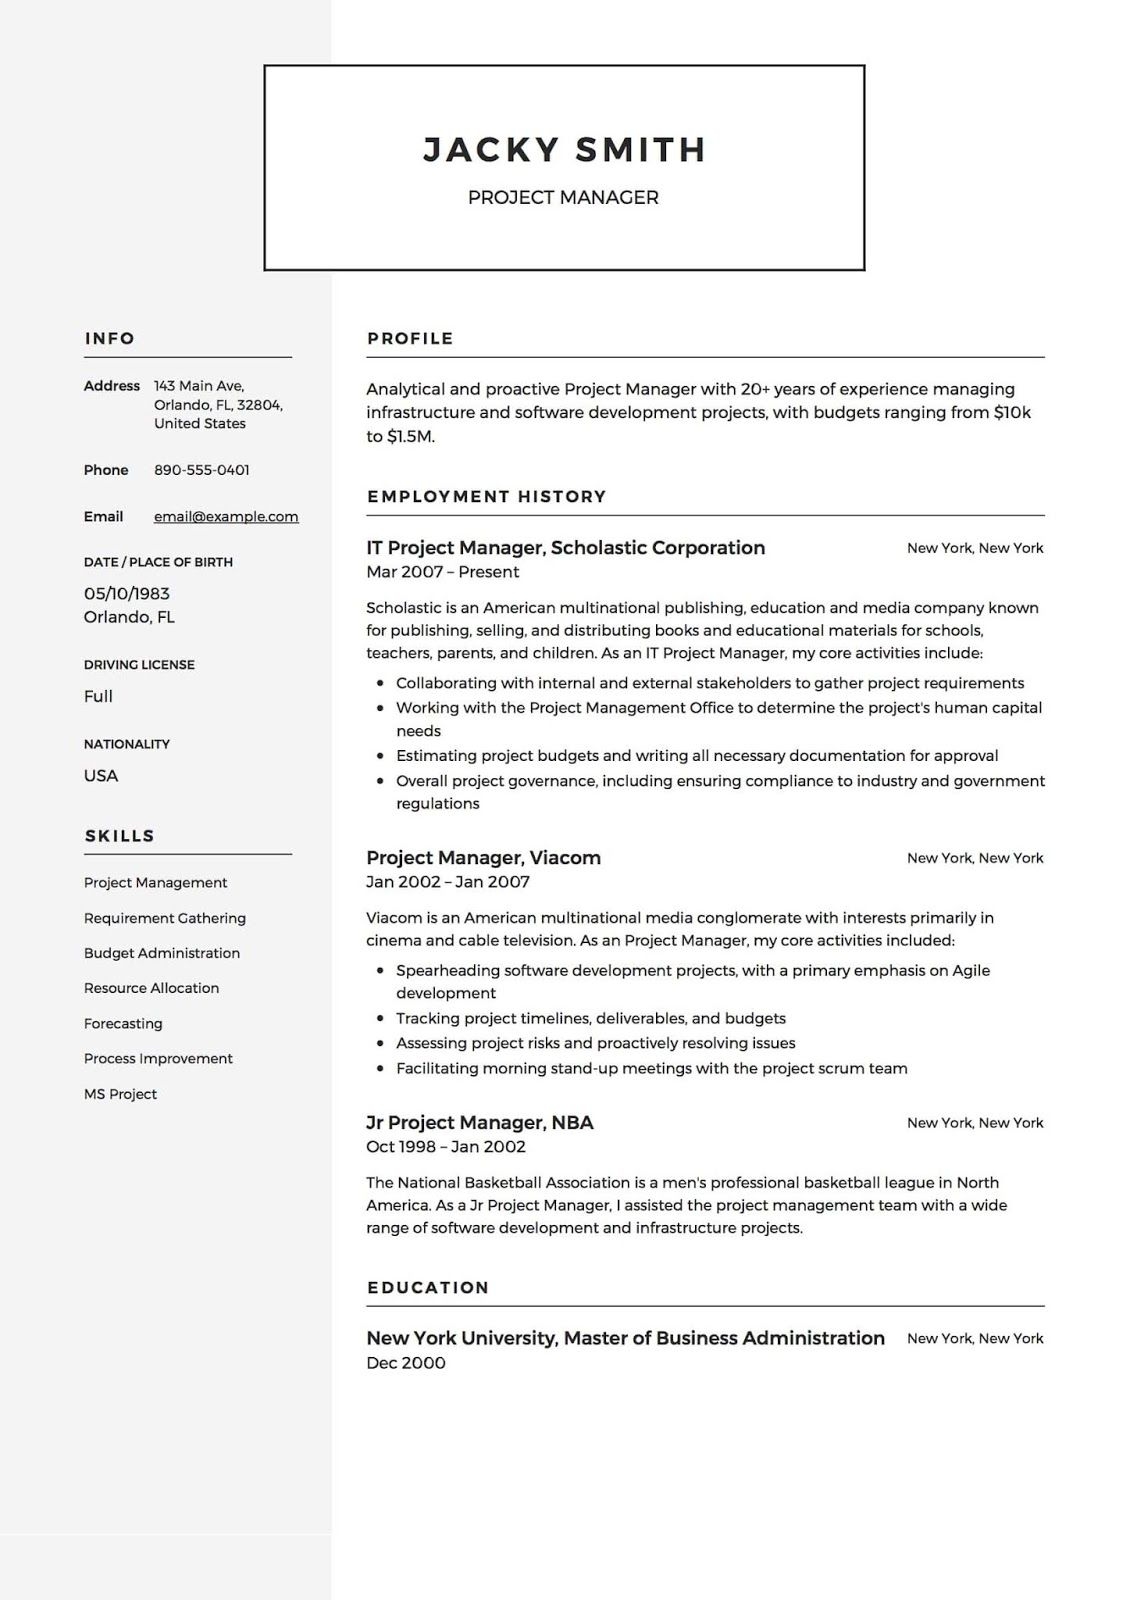 project manager resume templates basic examples free demonstrated abilities loan Resume Project Manager Resume Examples Free